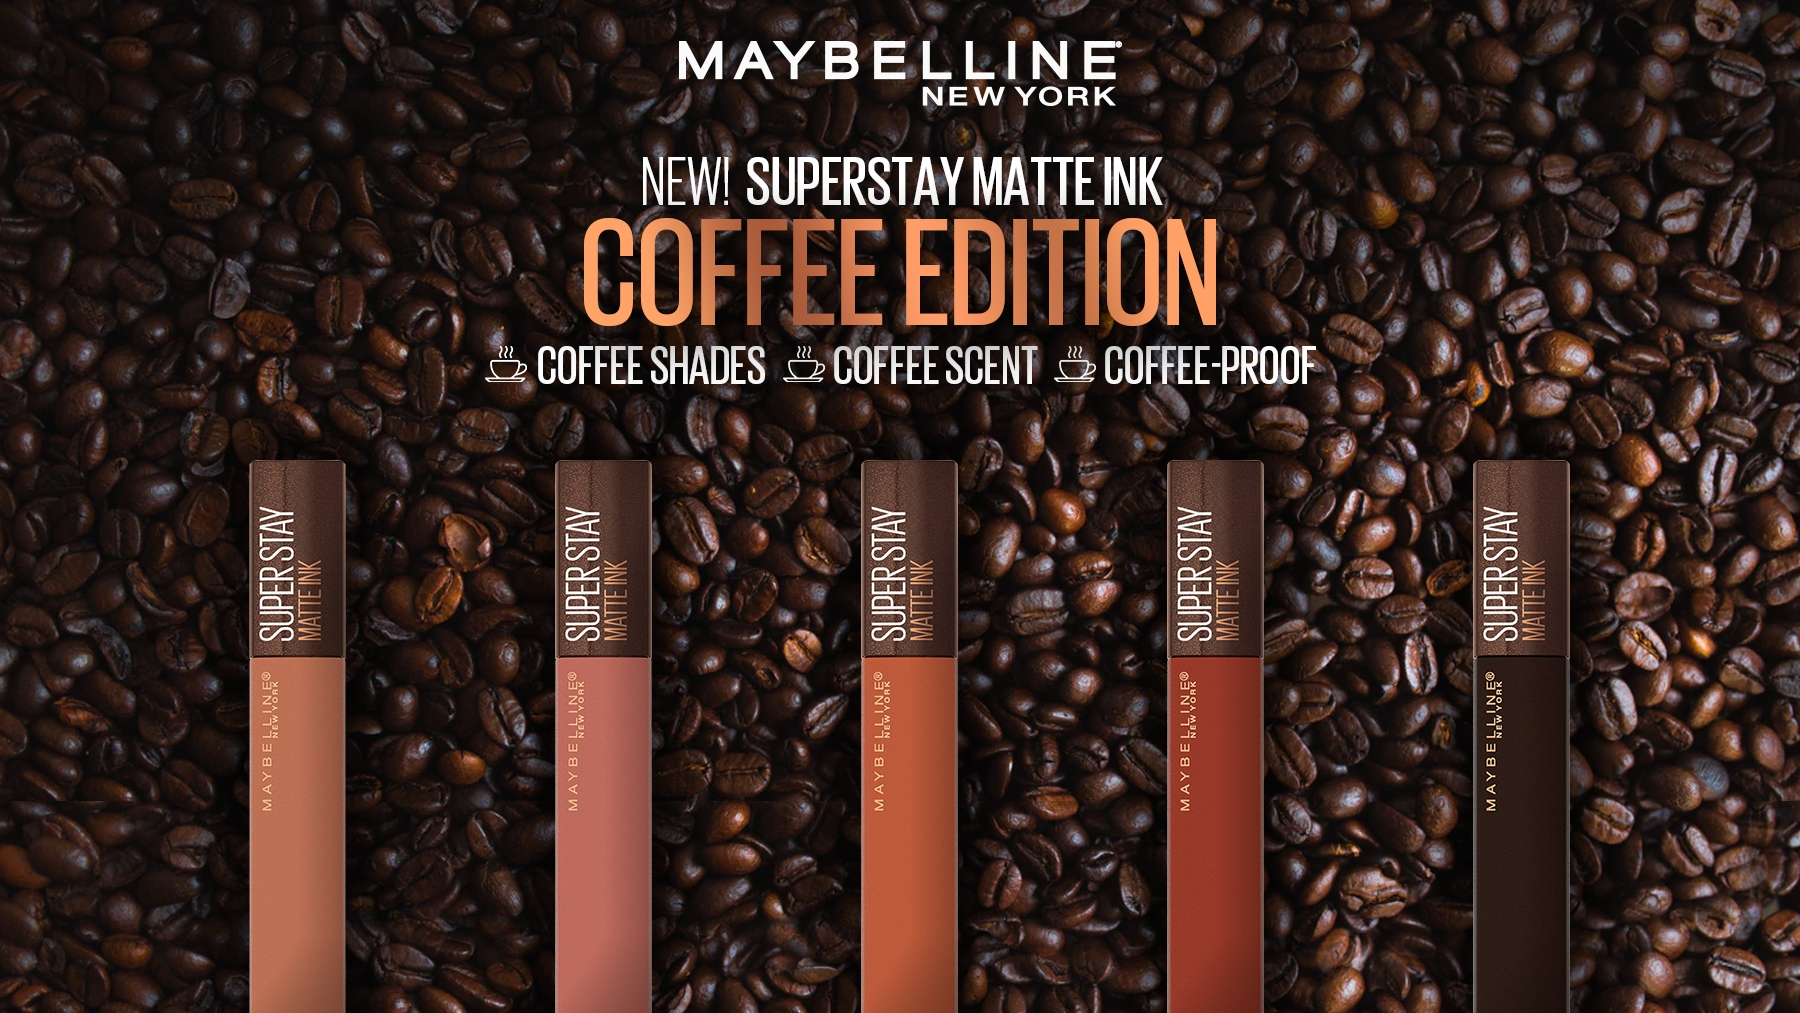 Maybelline's Superstay Matte Ink Coffee Edition is the Lipstick For Coffee-Lovers